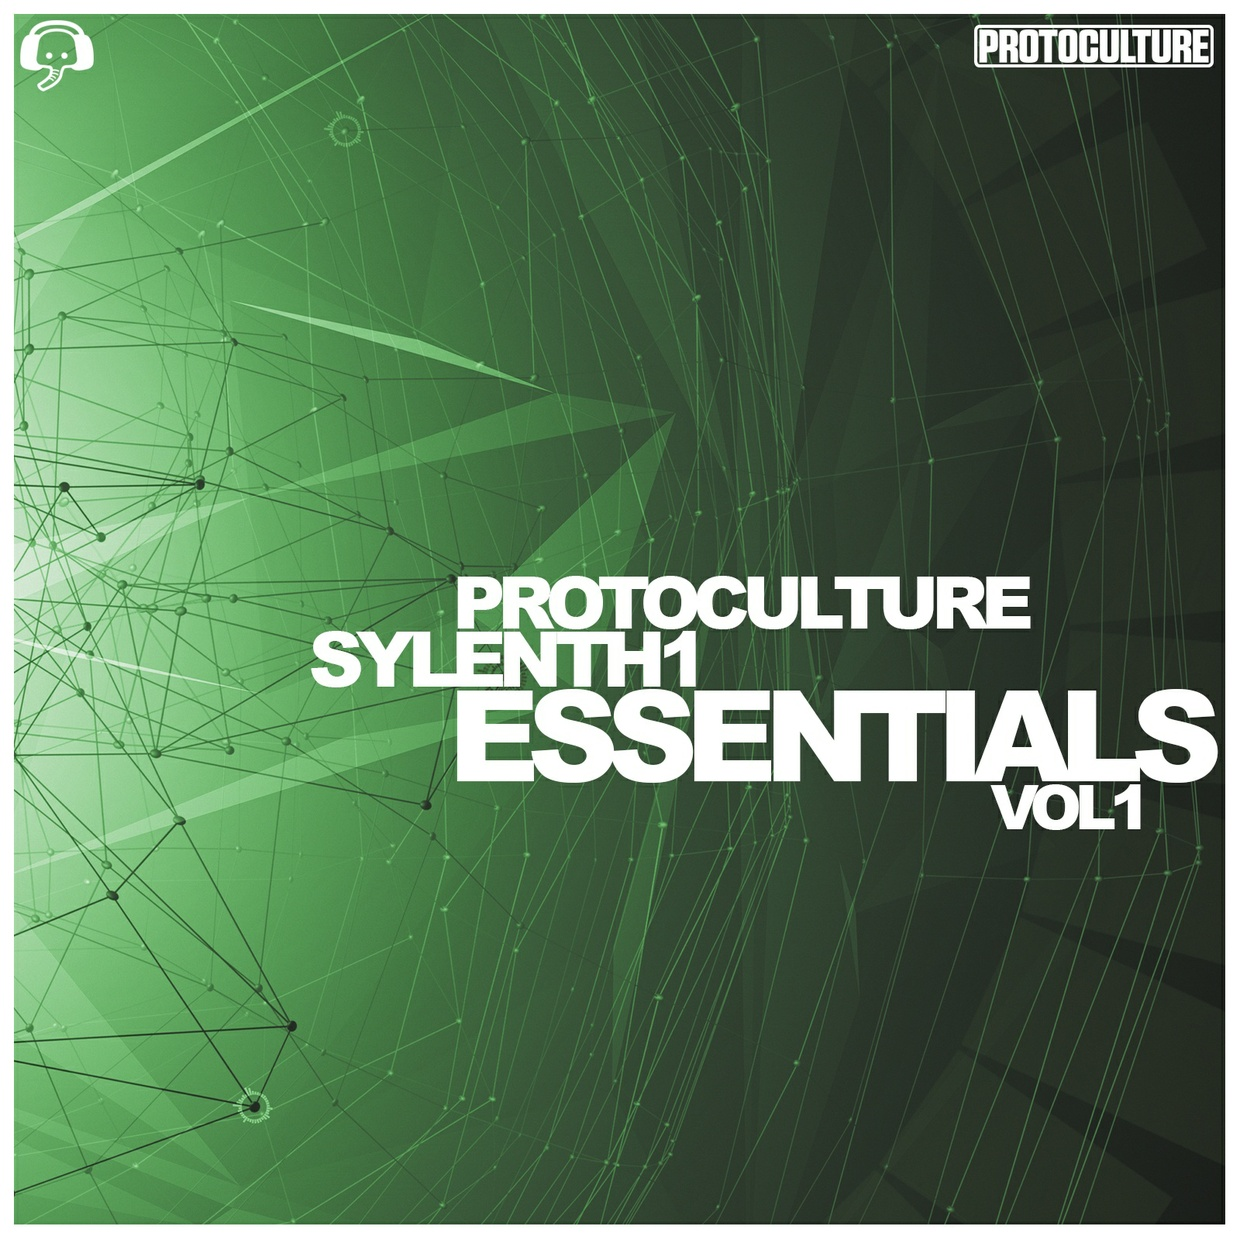 Protoculture Sylenth1 Essentials Vol 1